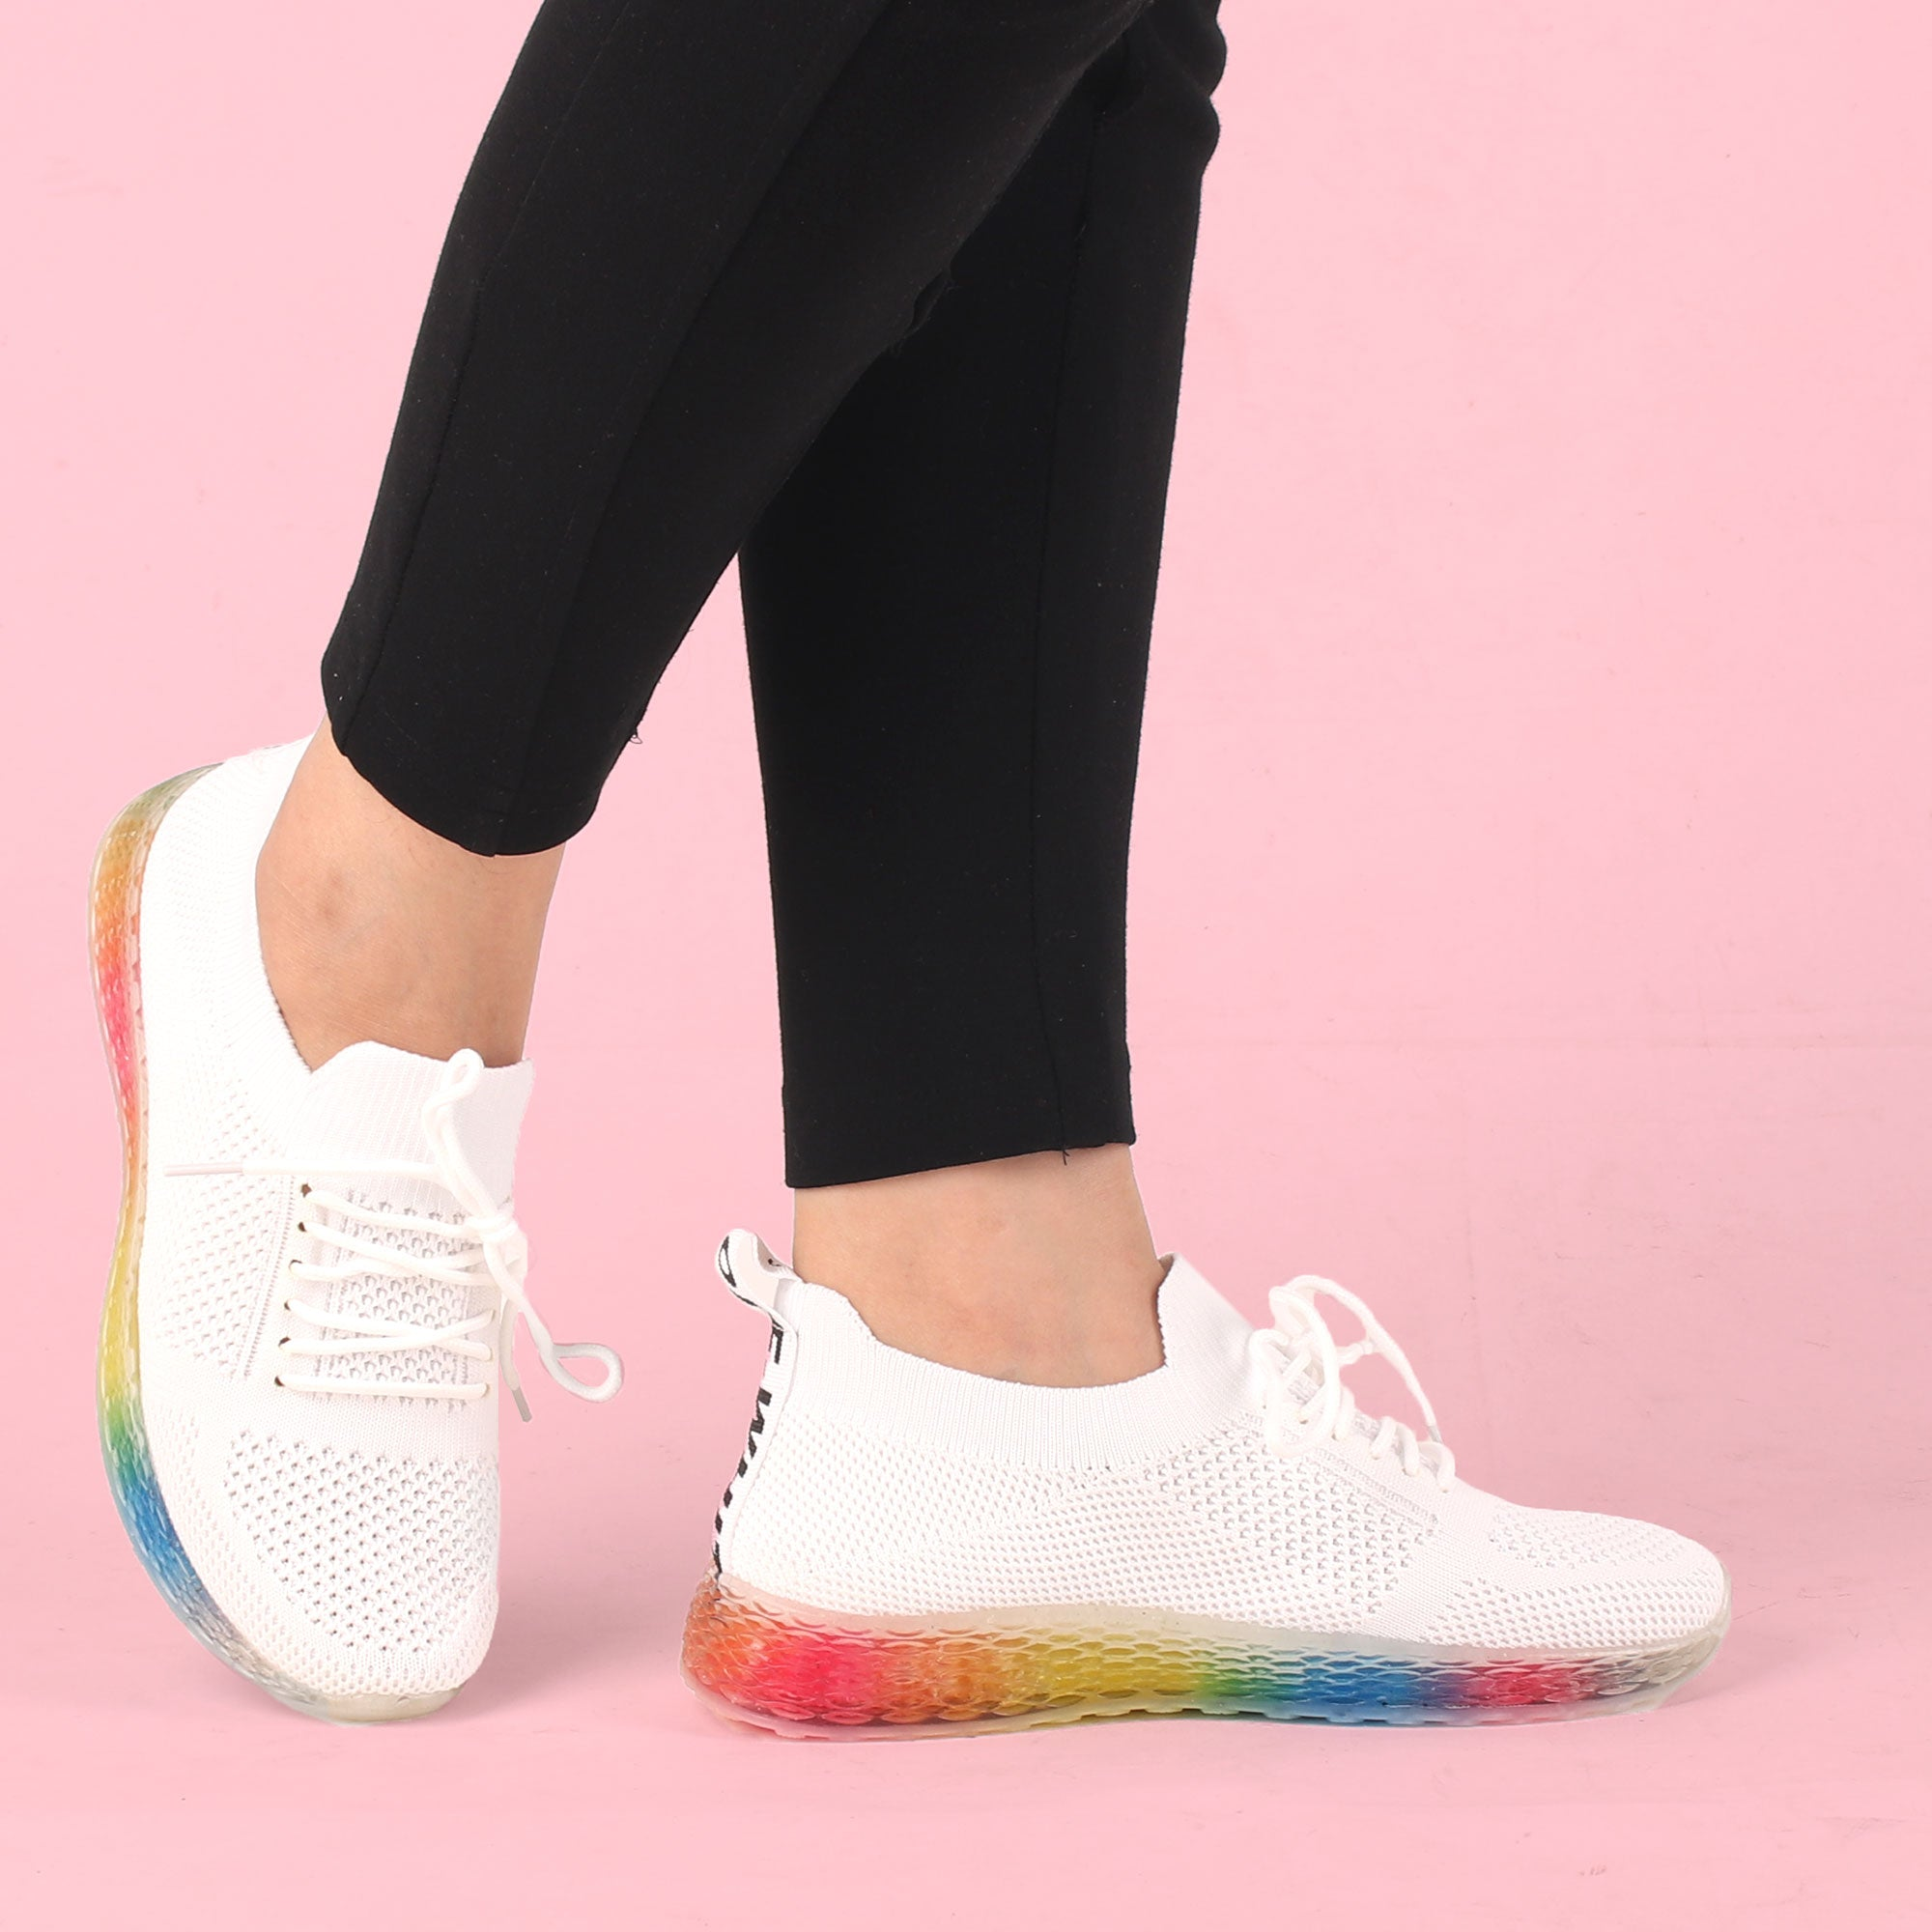 Foot Wear,The Rainbow White Gliders - Cippele Multi Store